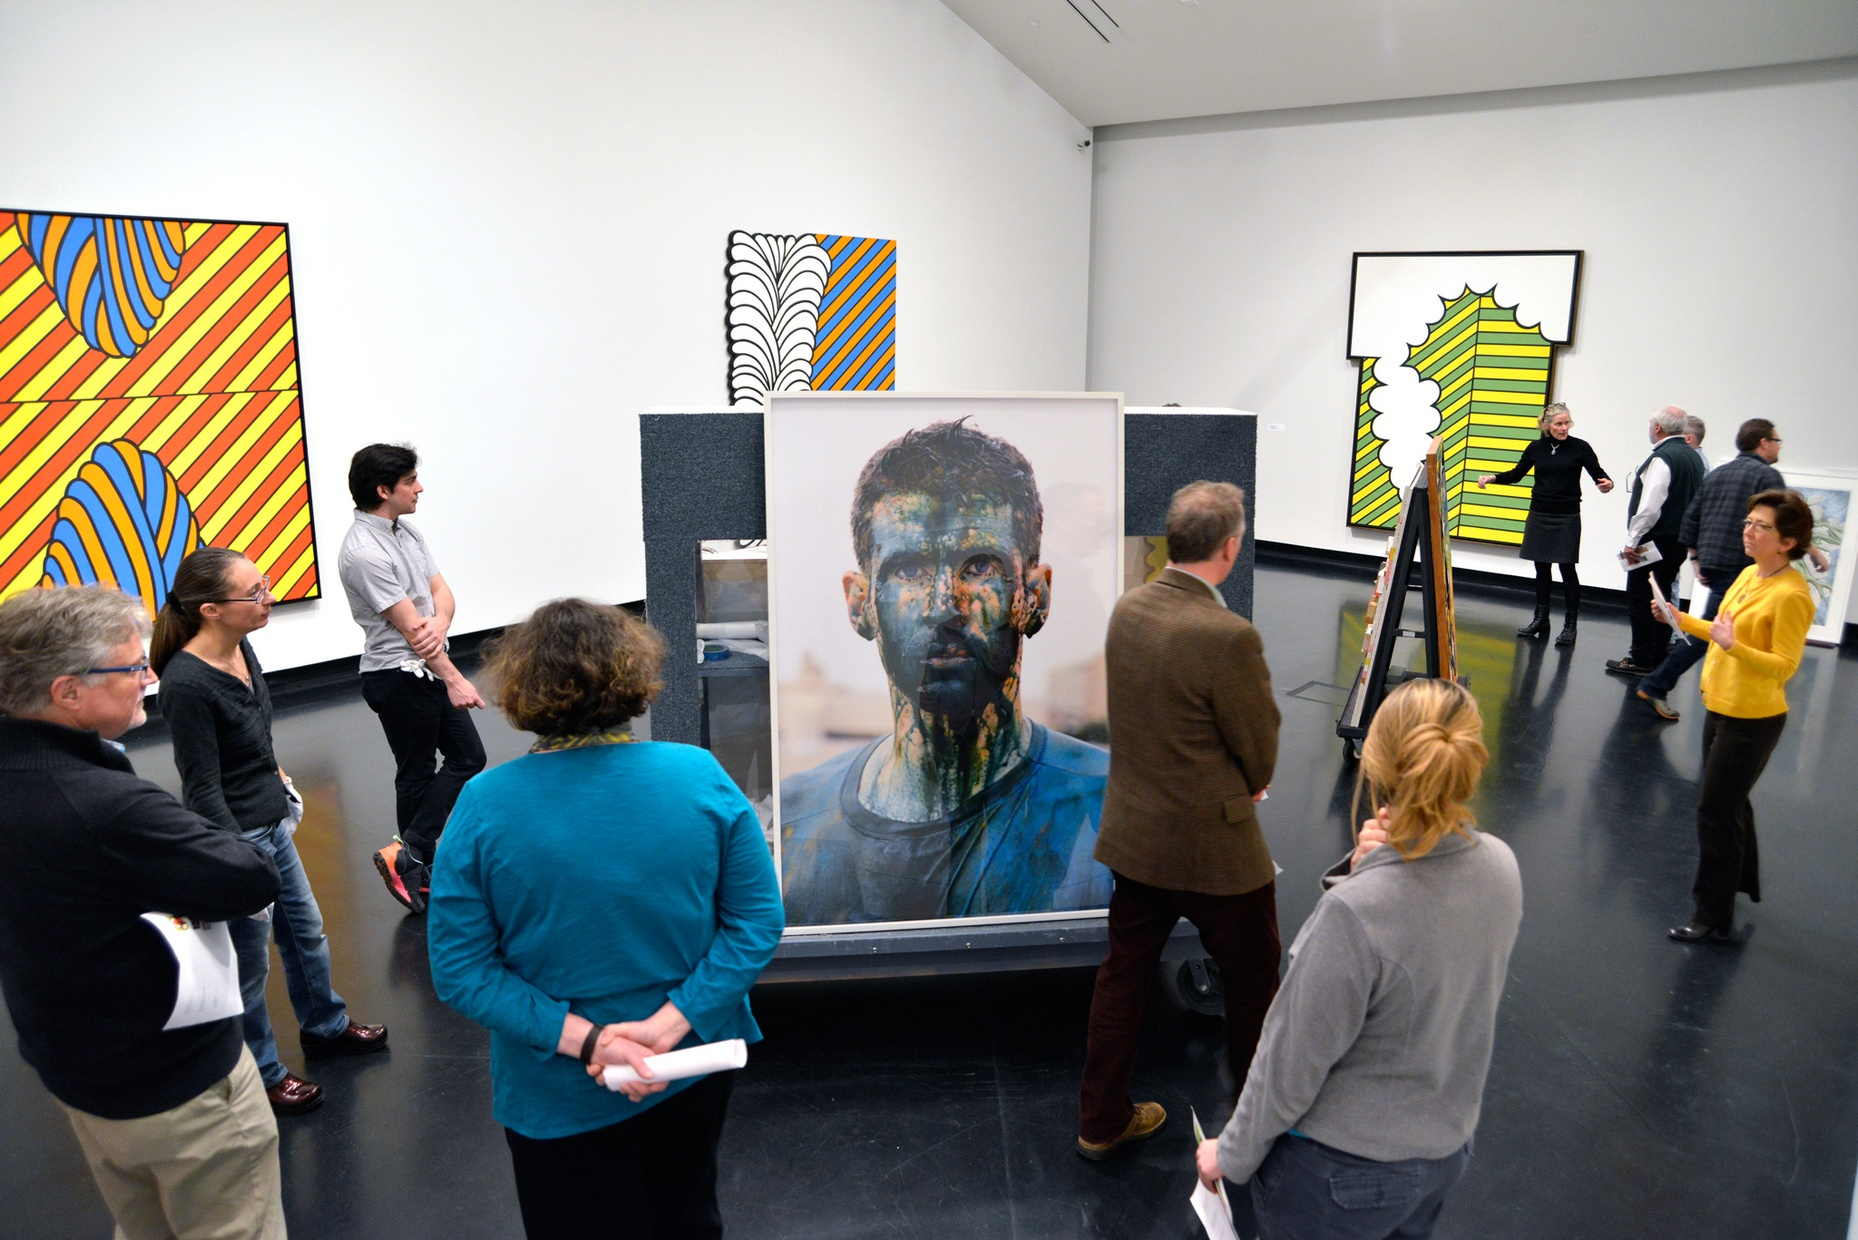 A group of people scattered throughout a gallery space with large, colorful, abstract prints on the walls and a large photograph of a young, white man with blue paint on his face sitting in the center of the gallery.